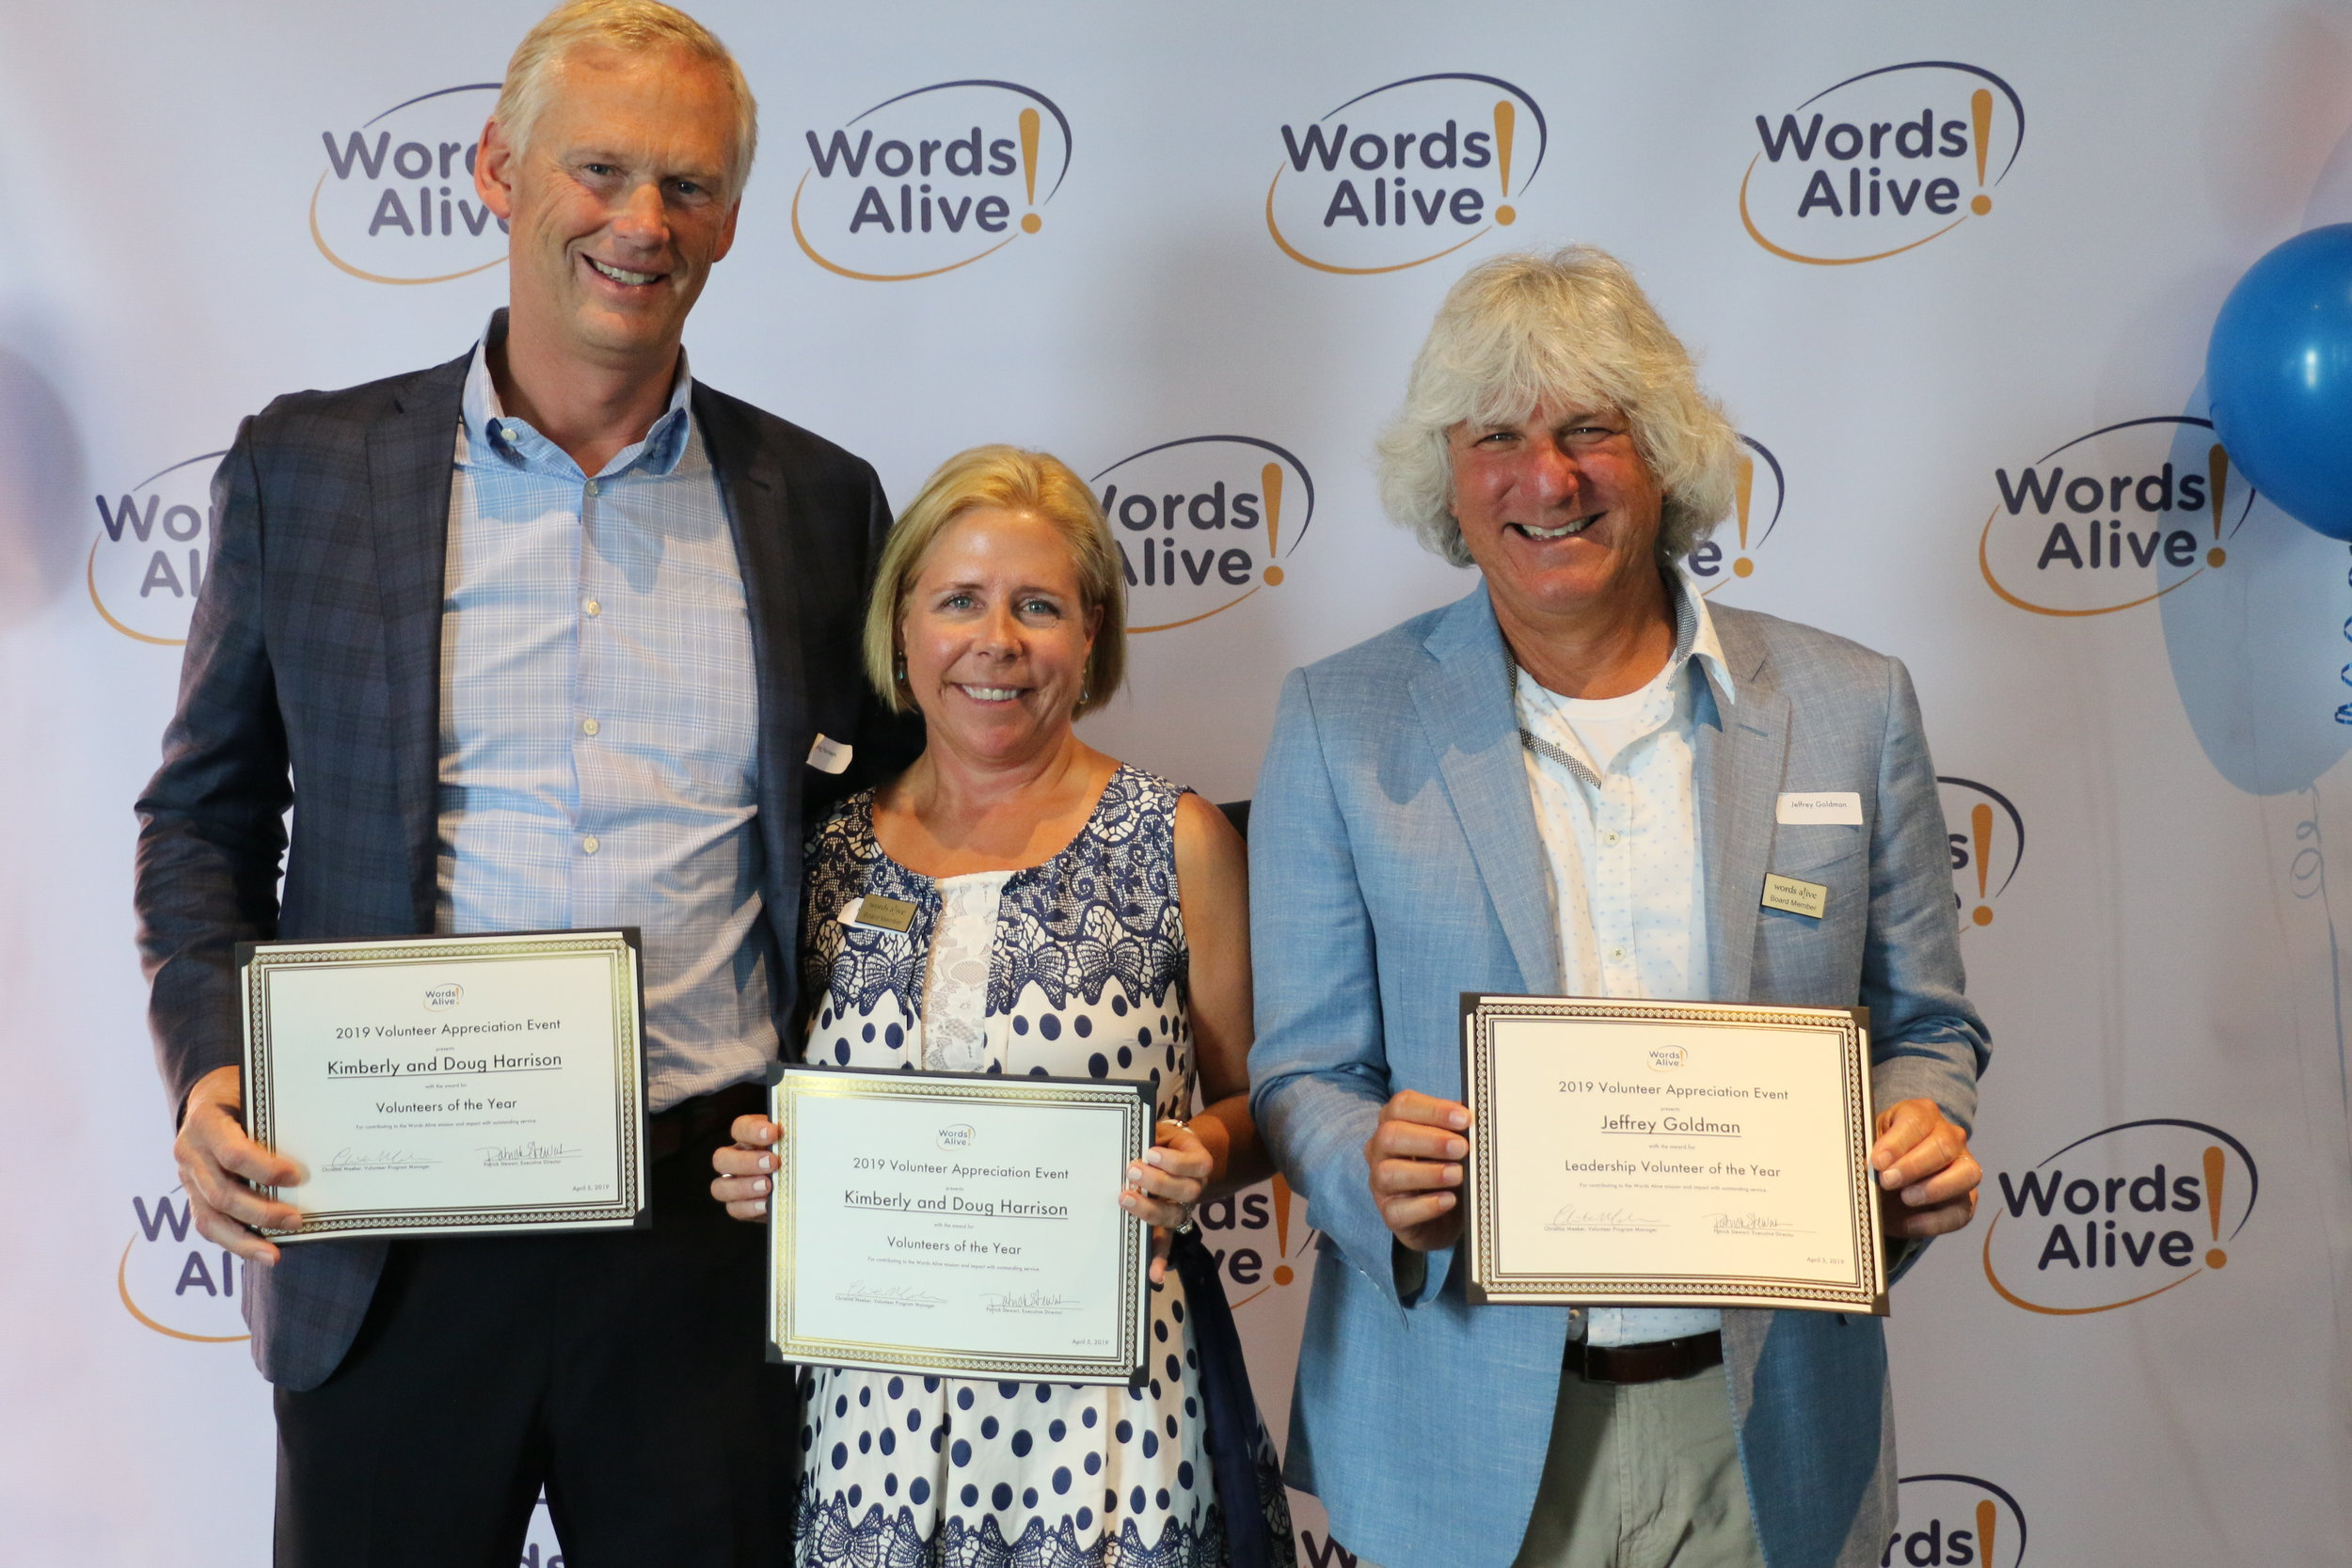 An image of Volunteers of the Year, Kim & Doug Harrison, with Leadership Volunteer of the Year, Jeffrey Goldman!